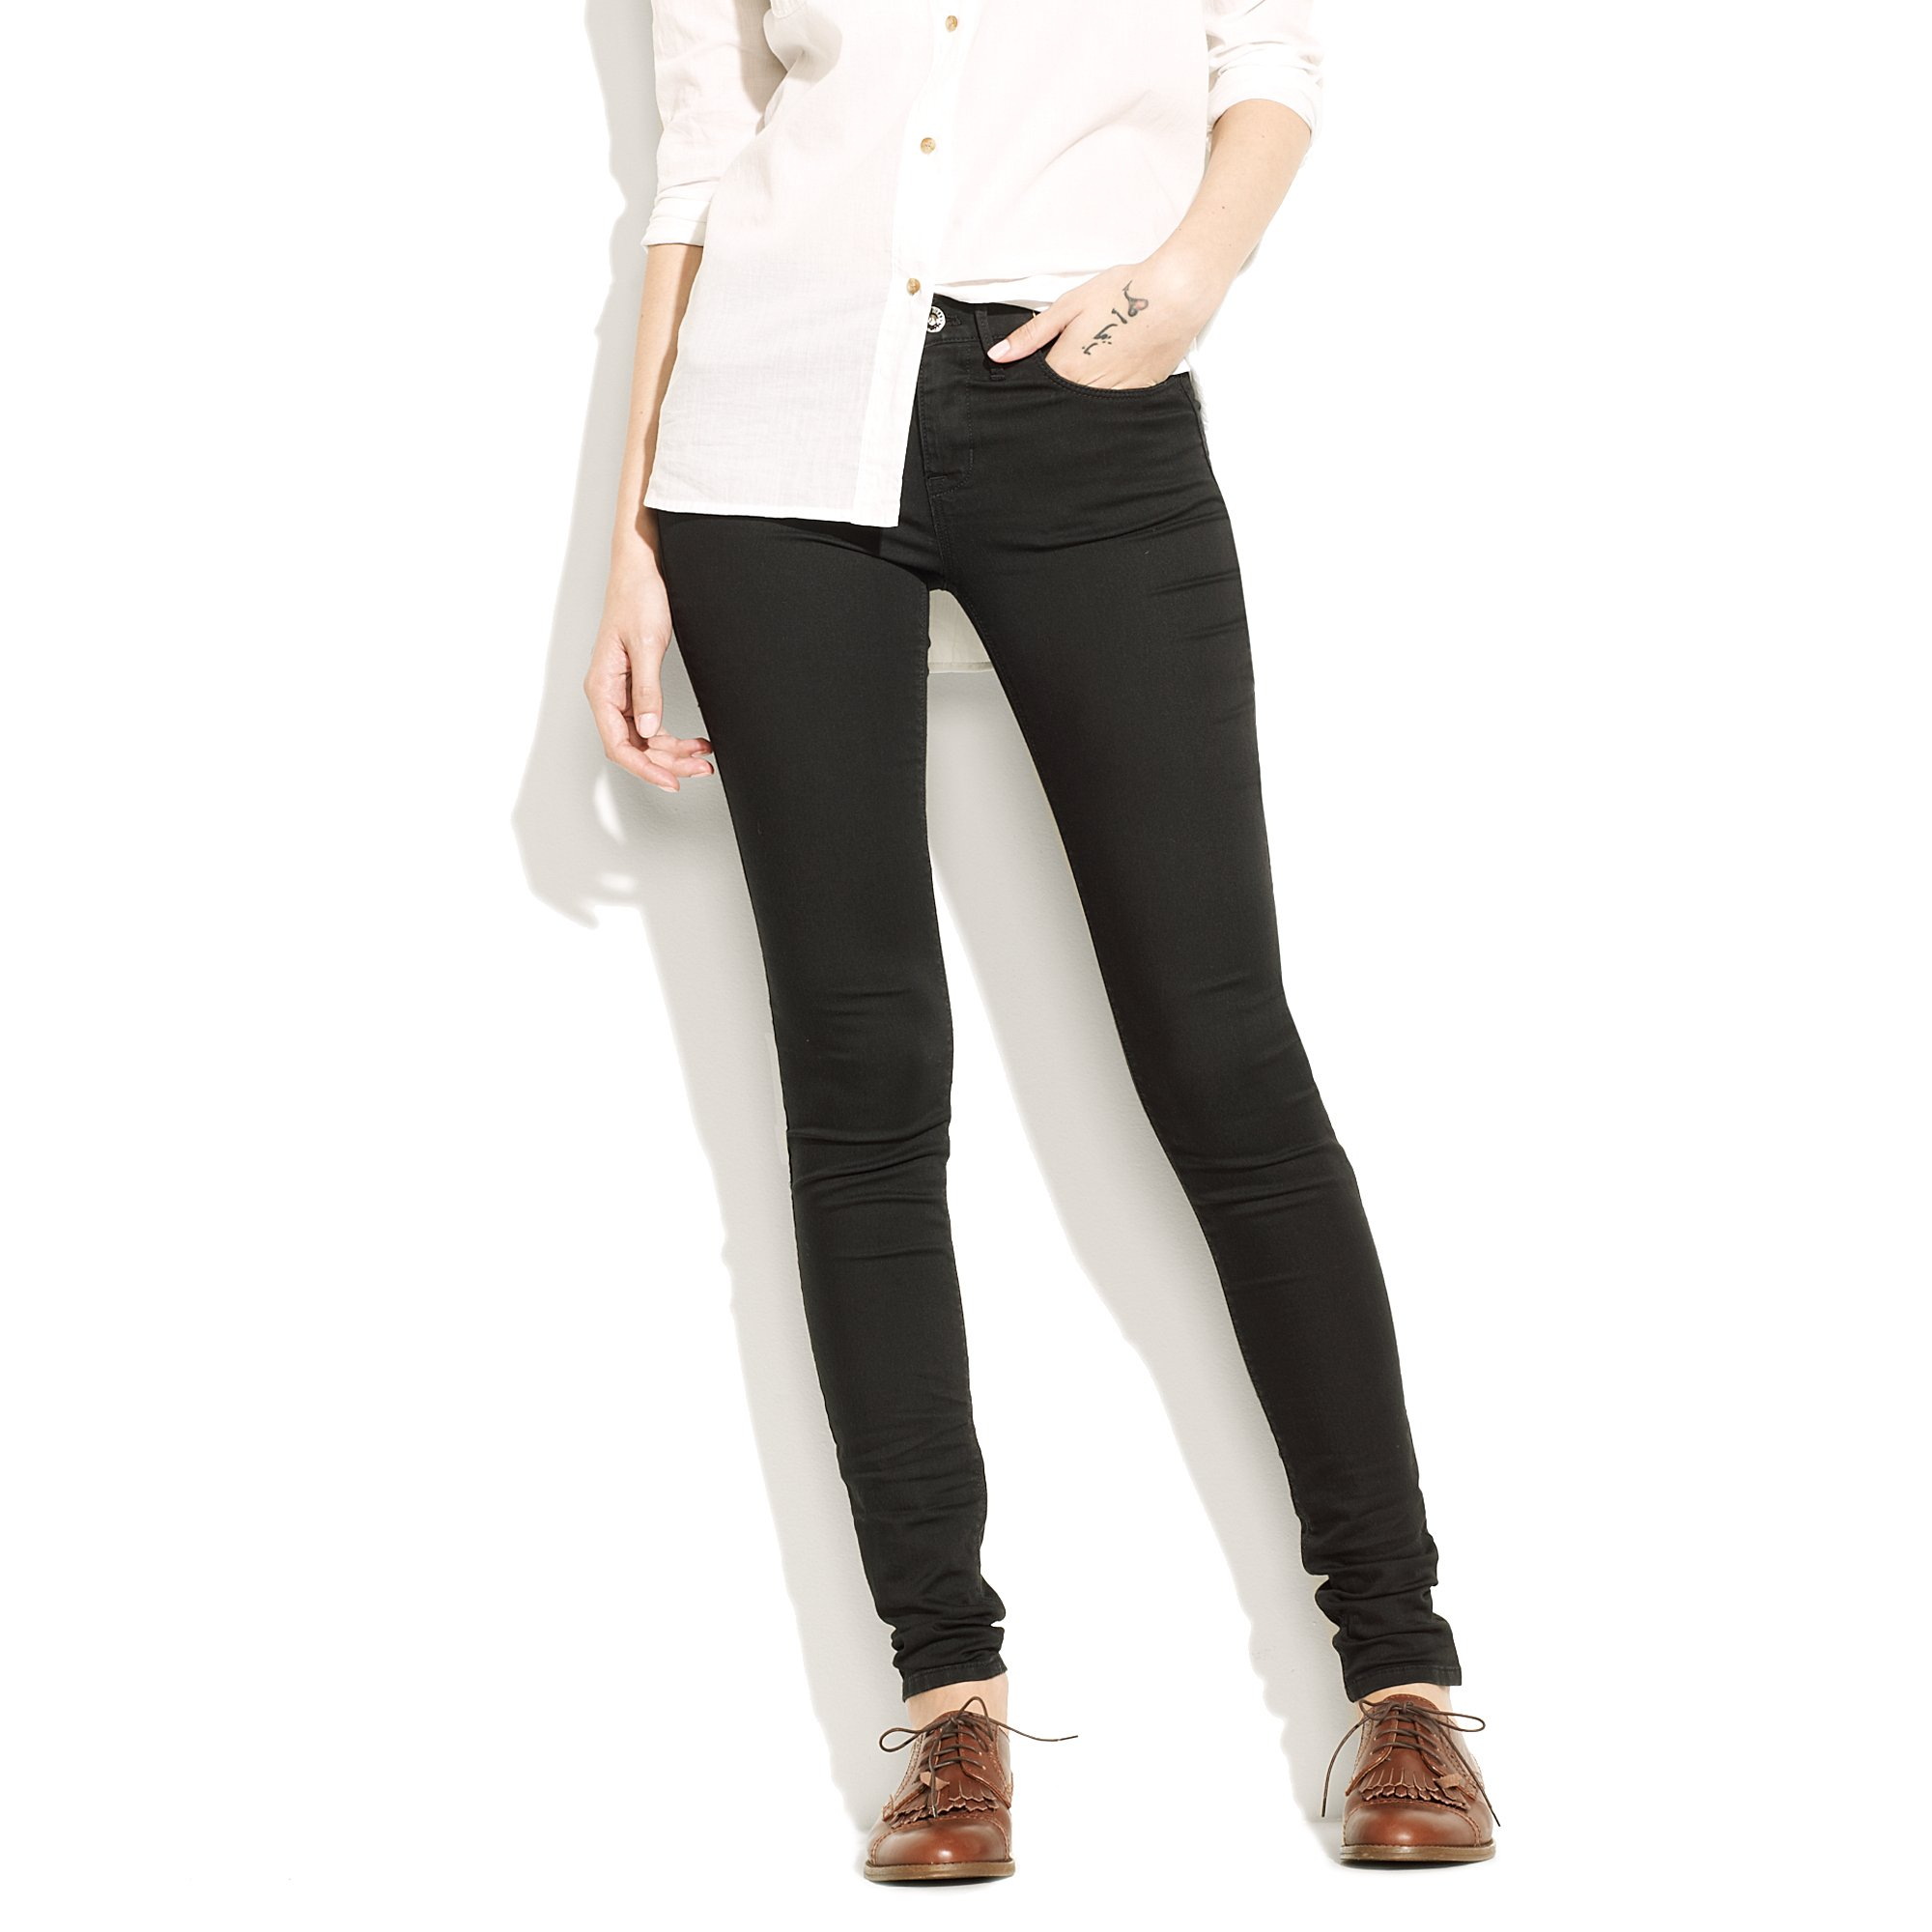 7928a231d689c Madewell Legging Jeans in Classic Black in Black - Lyst